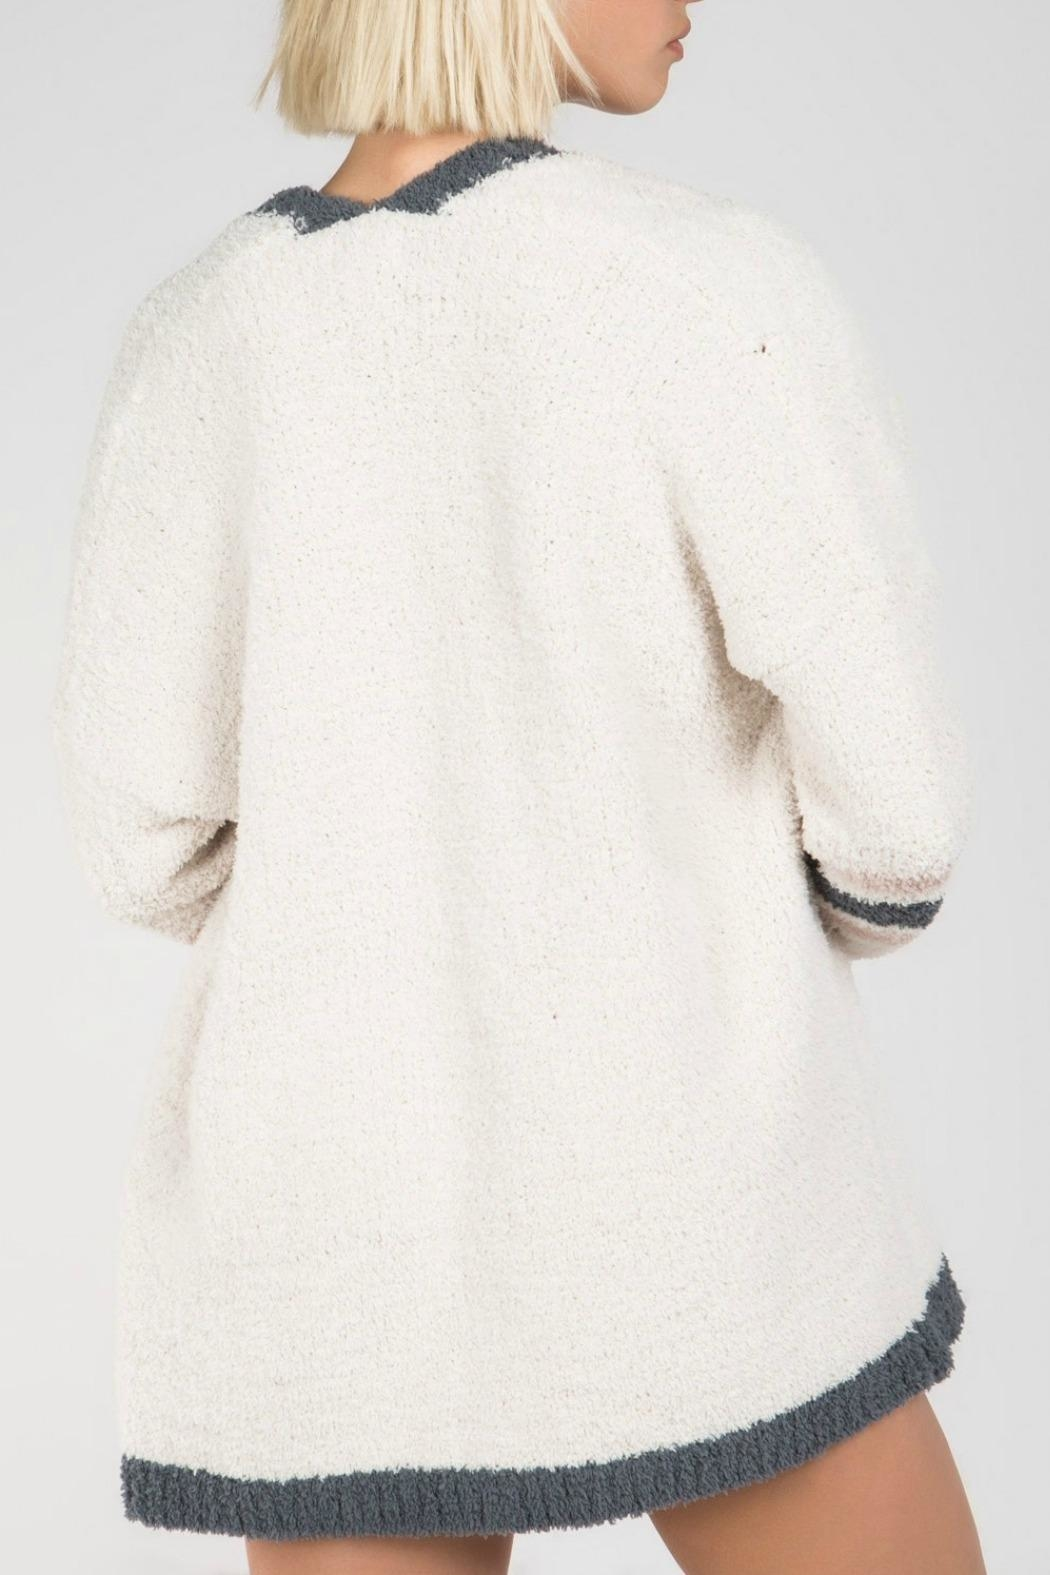 MHGS Berber Fleece Cardigan - Back Cropped Image